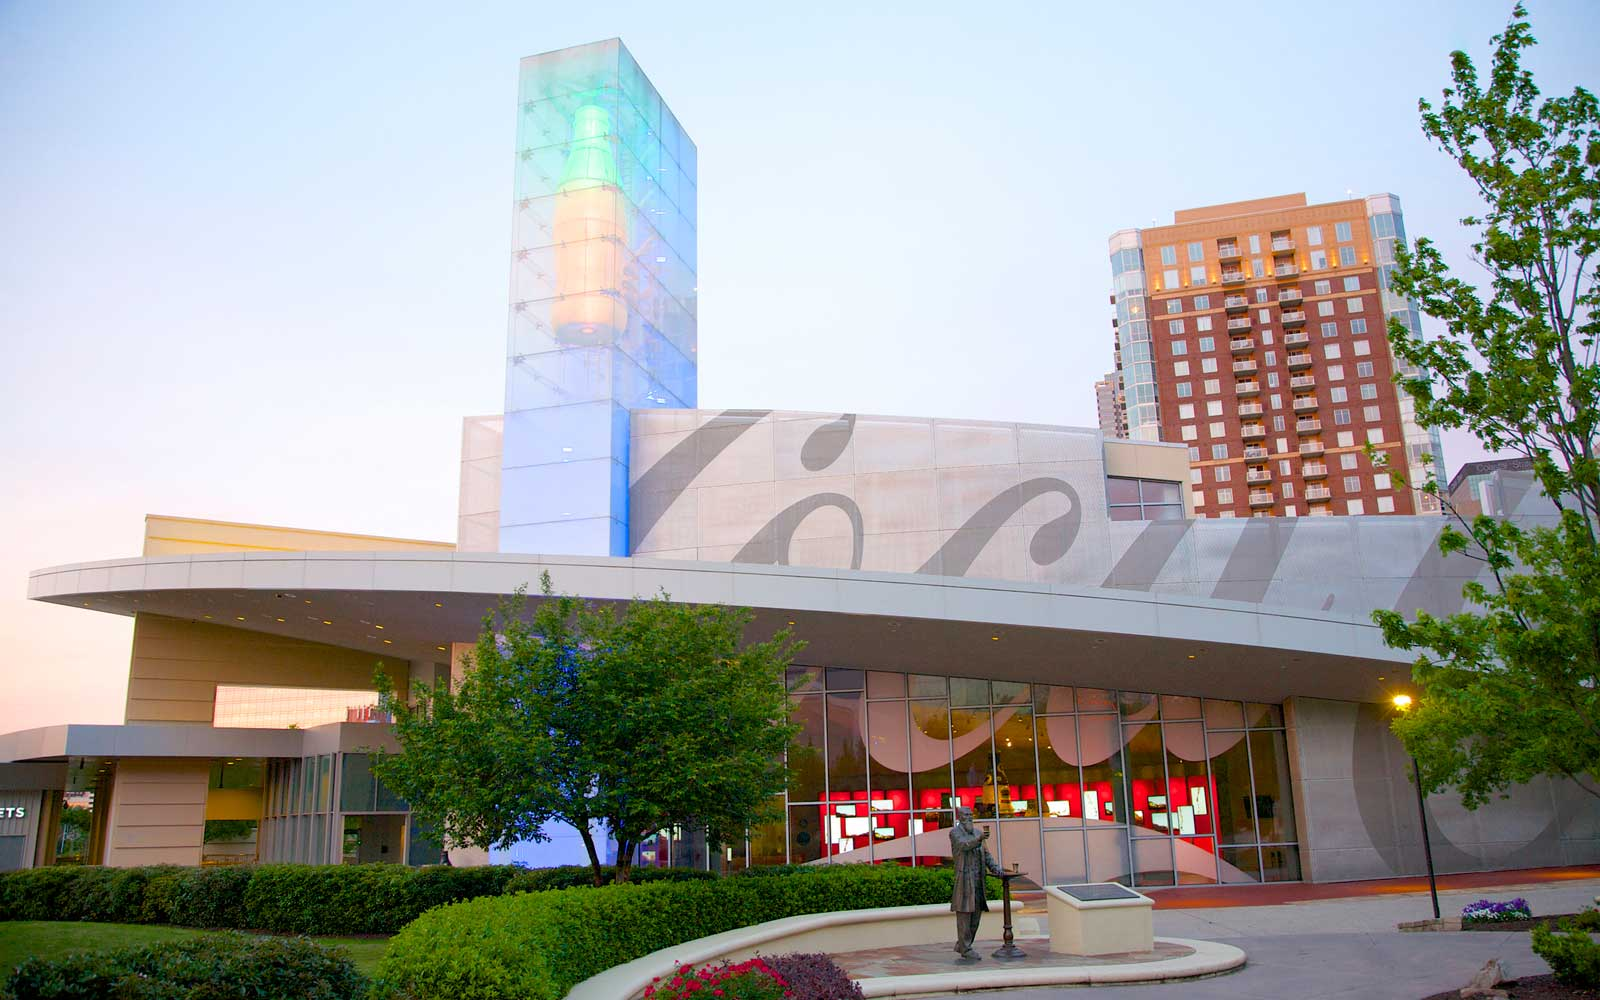 Dusk view of World of Coca-Cola, Downtown, Atlanta